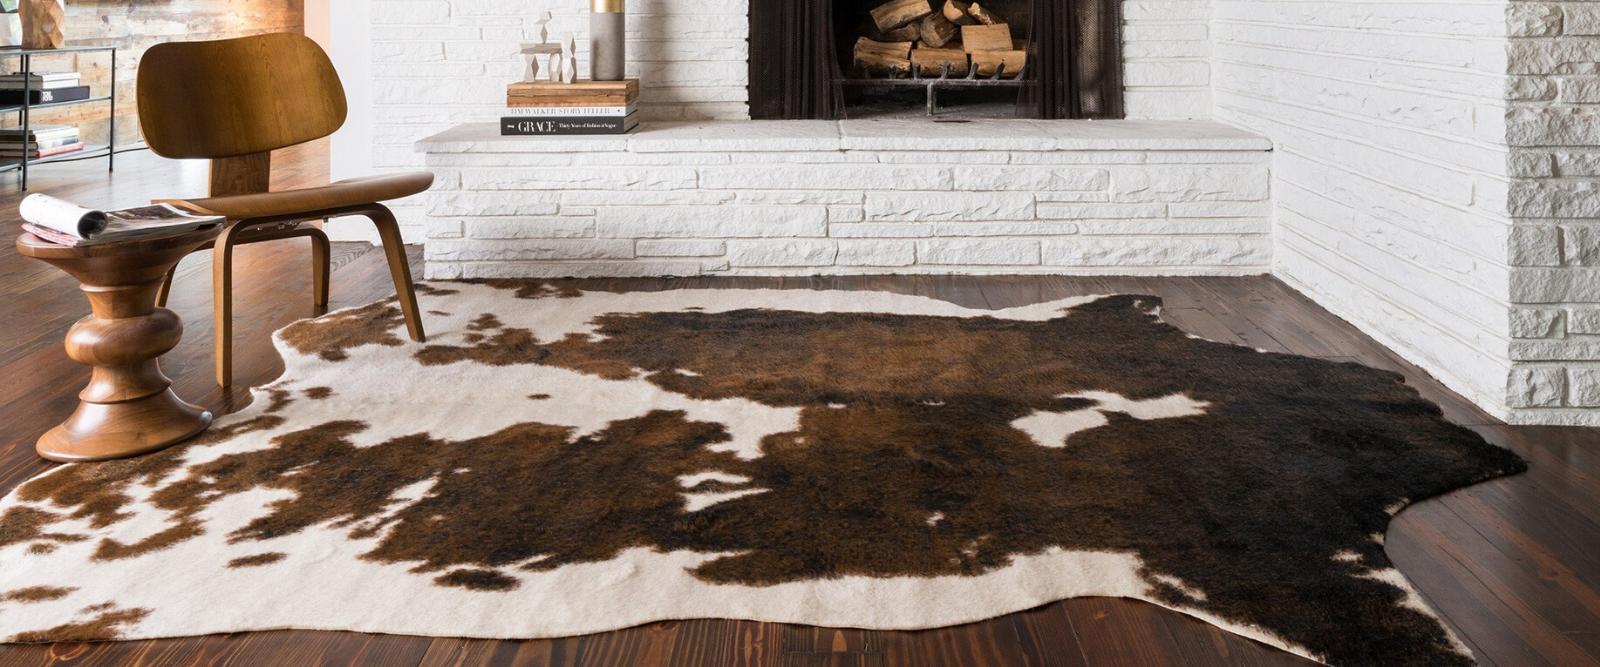 Caring for Cowhide Rugs